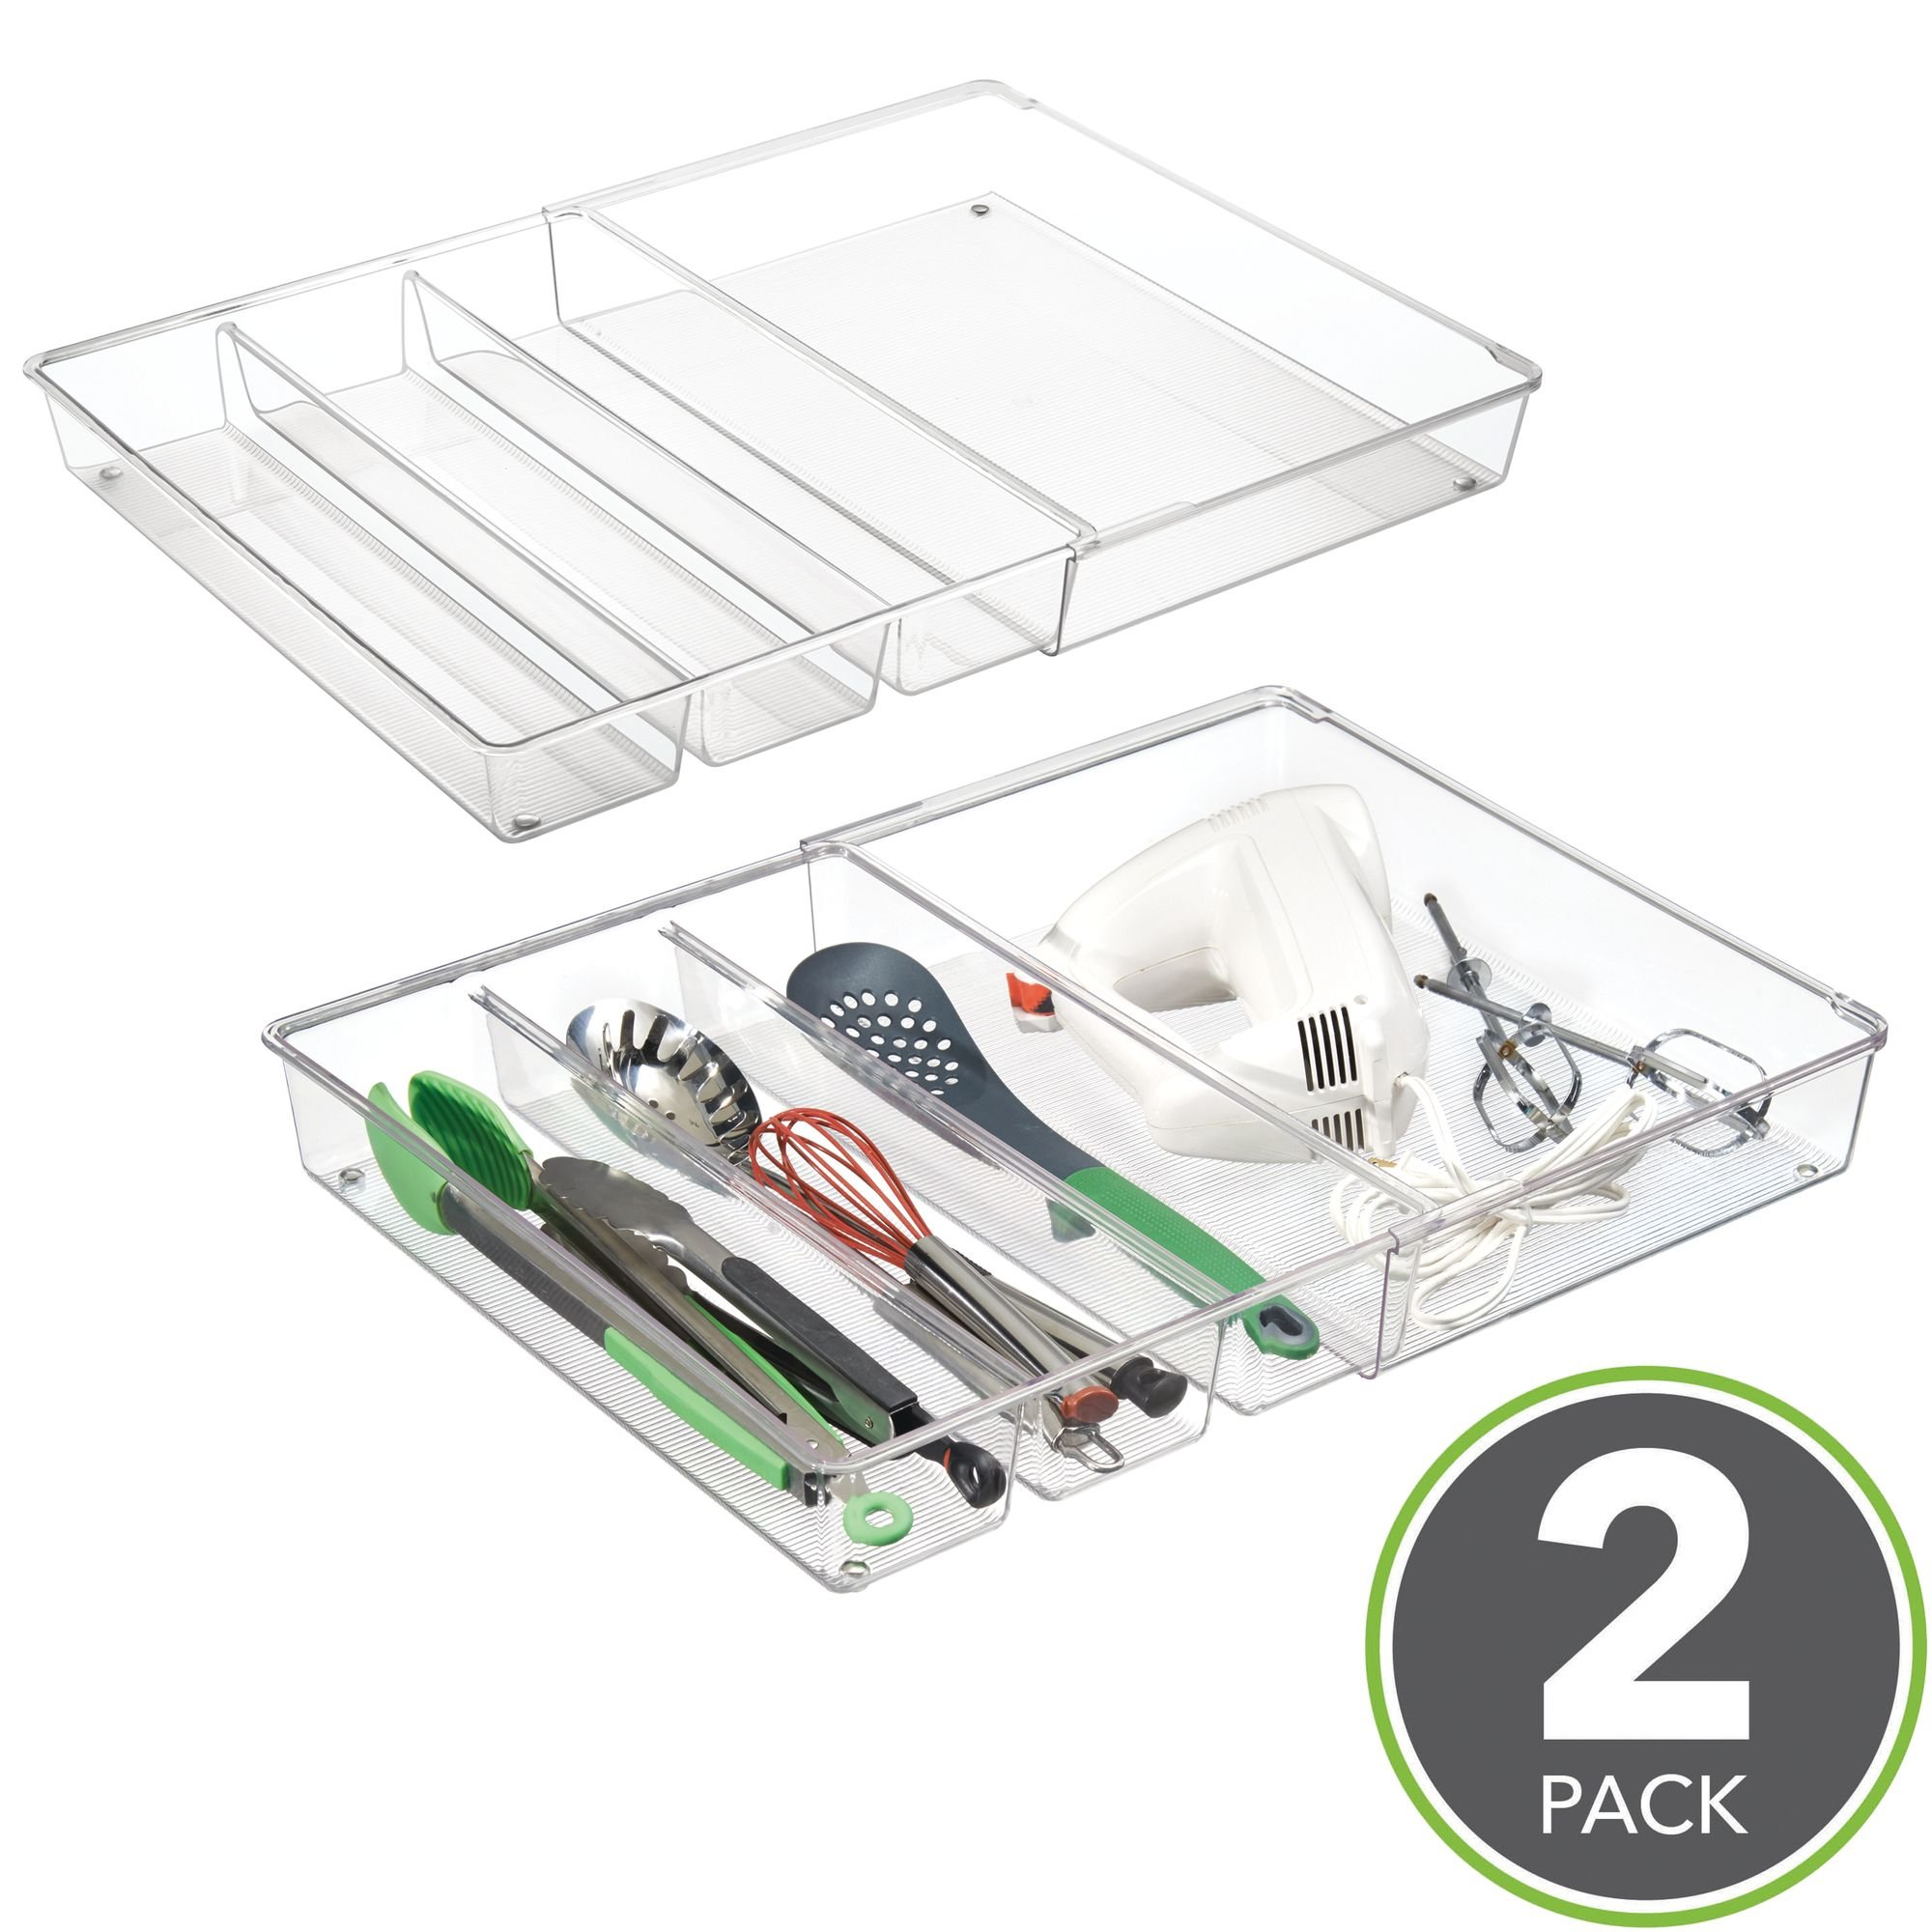 mDesign Adjustable, Expandable 4 Compartment Kitchen Cabinet Drawer Organizer Tray - Divided Sections for Cutlery, Serving, Cooking Utensils, Gadgets - BPA Free, Food Safe, 3'' Deep, Pack of 2, Clear